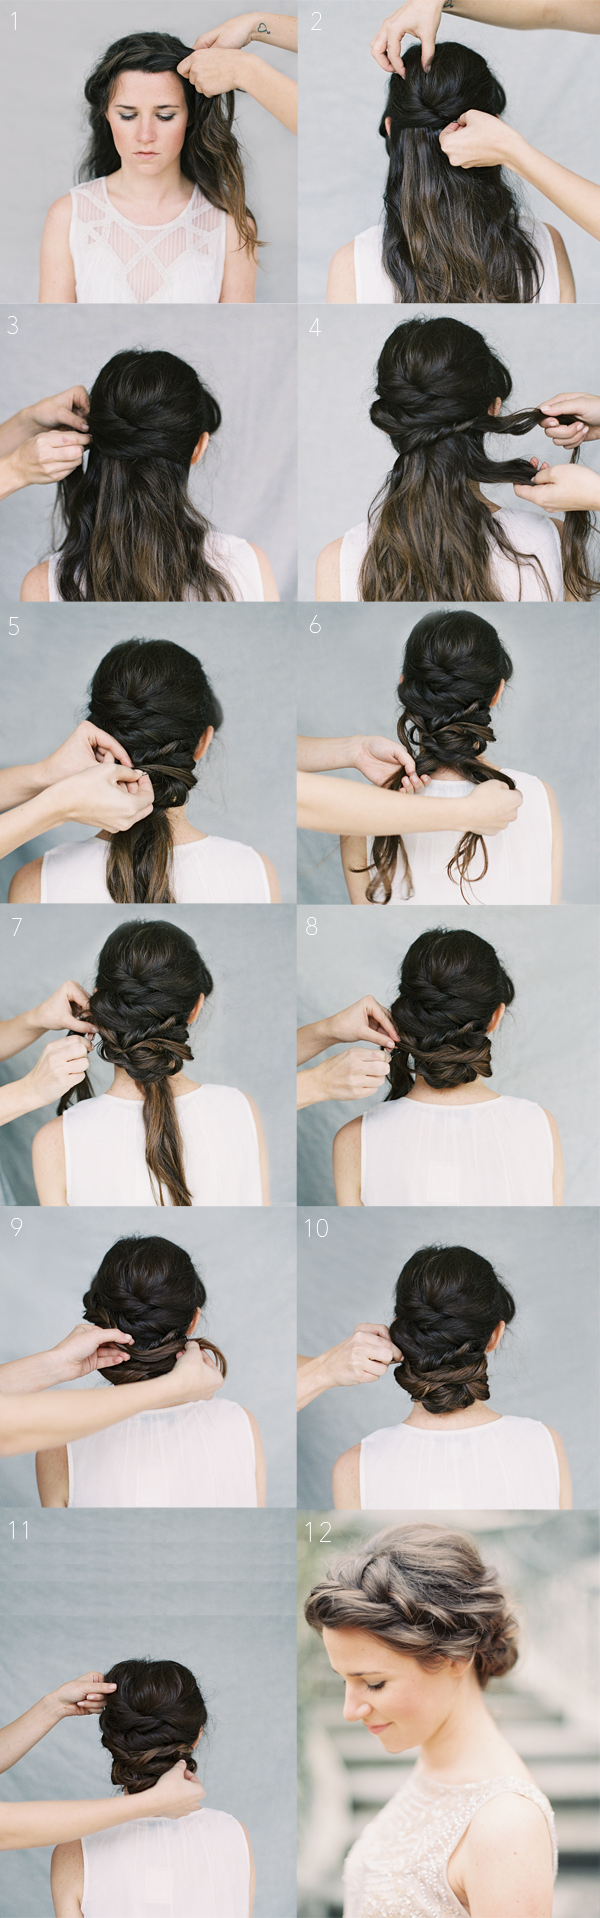 French braid front section of hair from one ear to the other leave